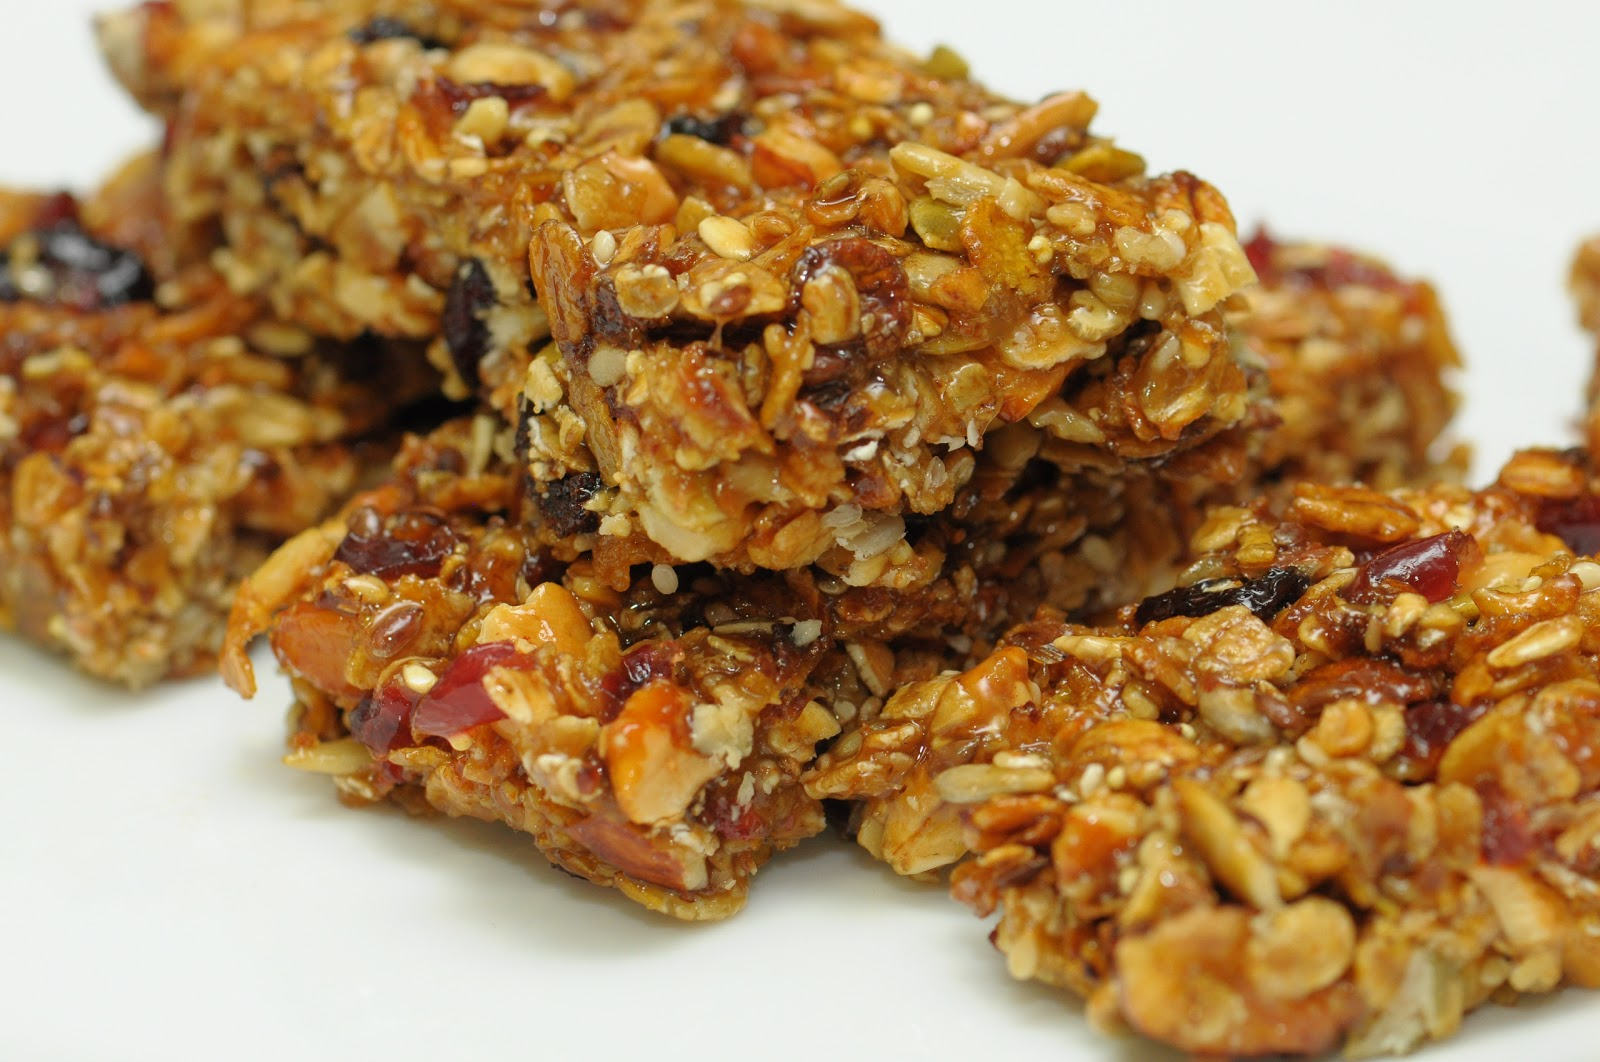 scrappingcrazy : Homemade Granola Bars